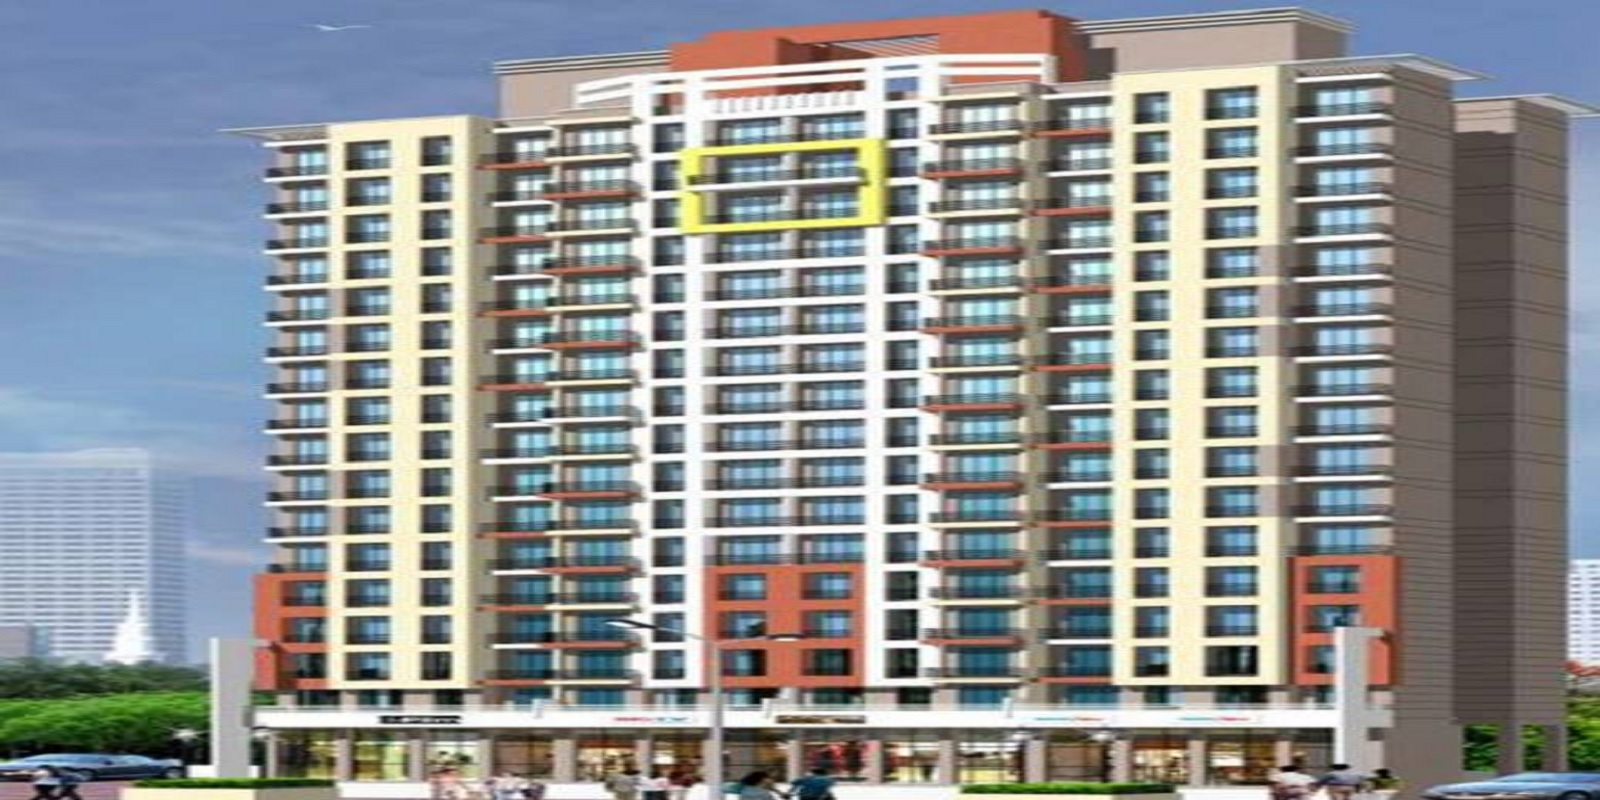 dgs sheetal heights project project large image1